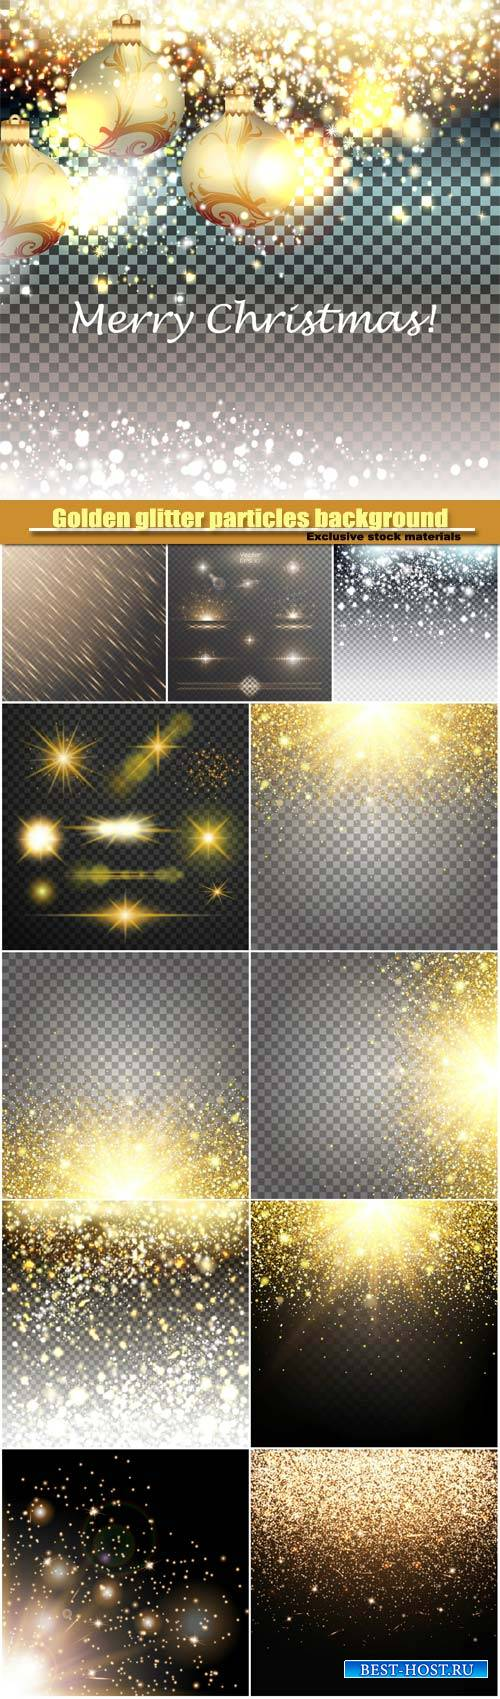 Golden and silver glitter particles background effect, luxury greeting card